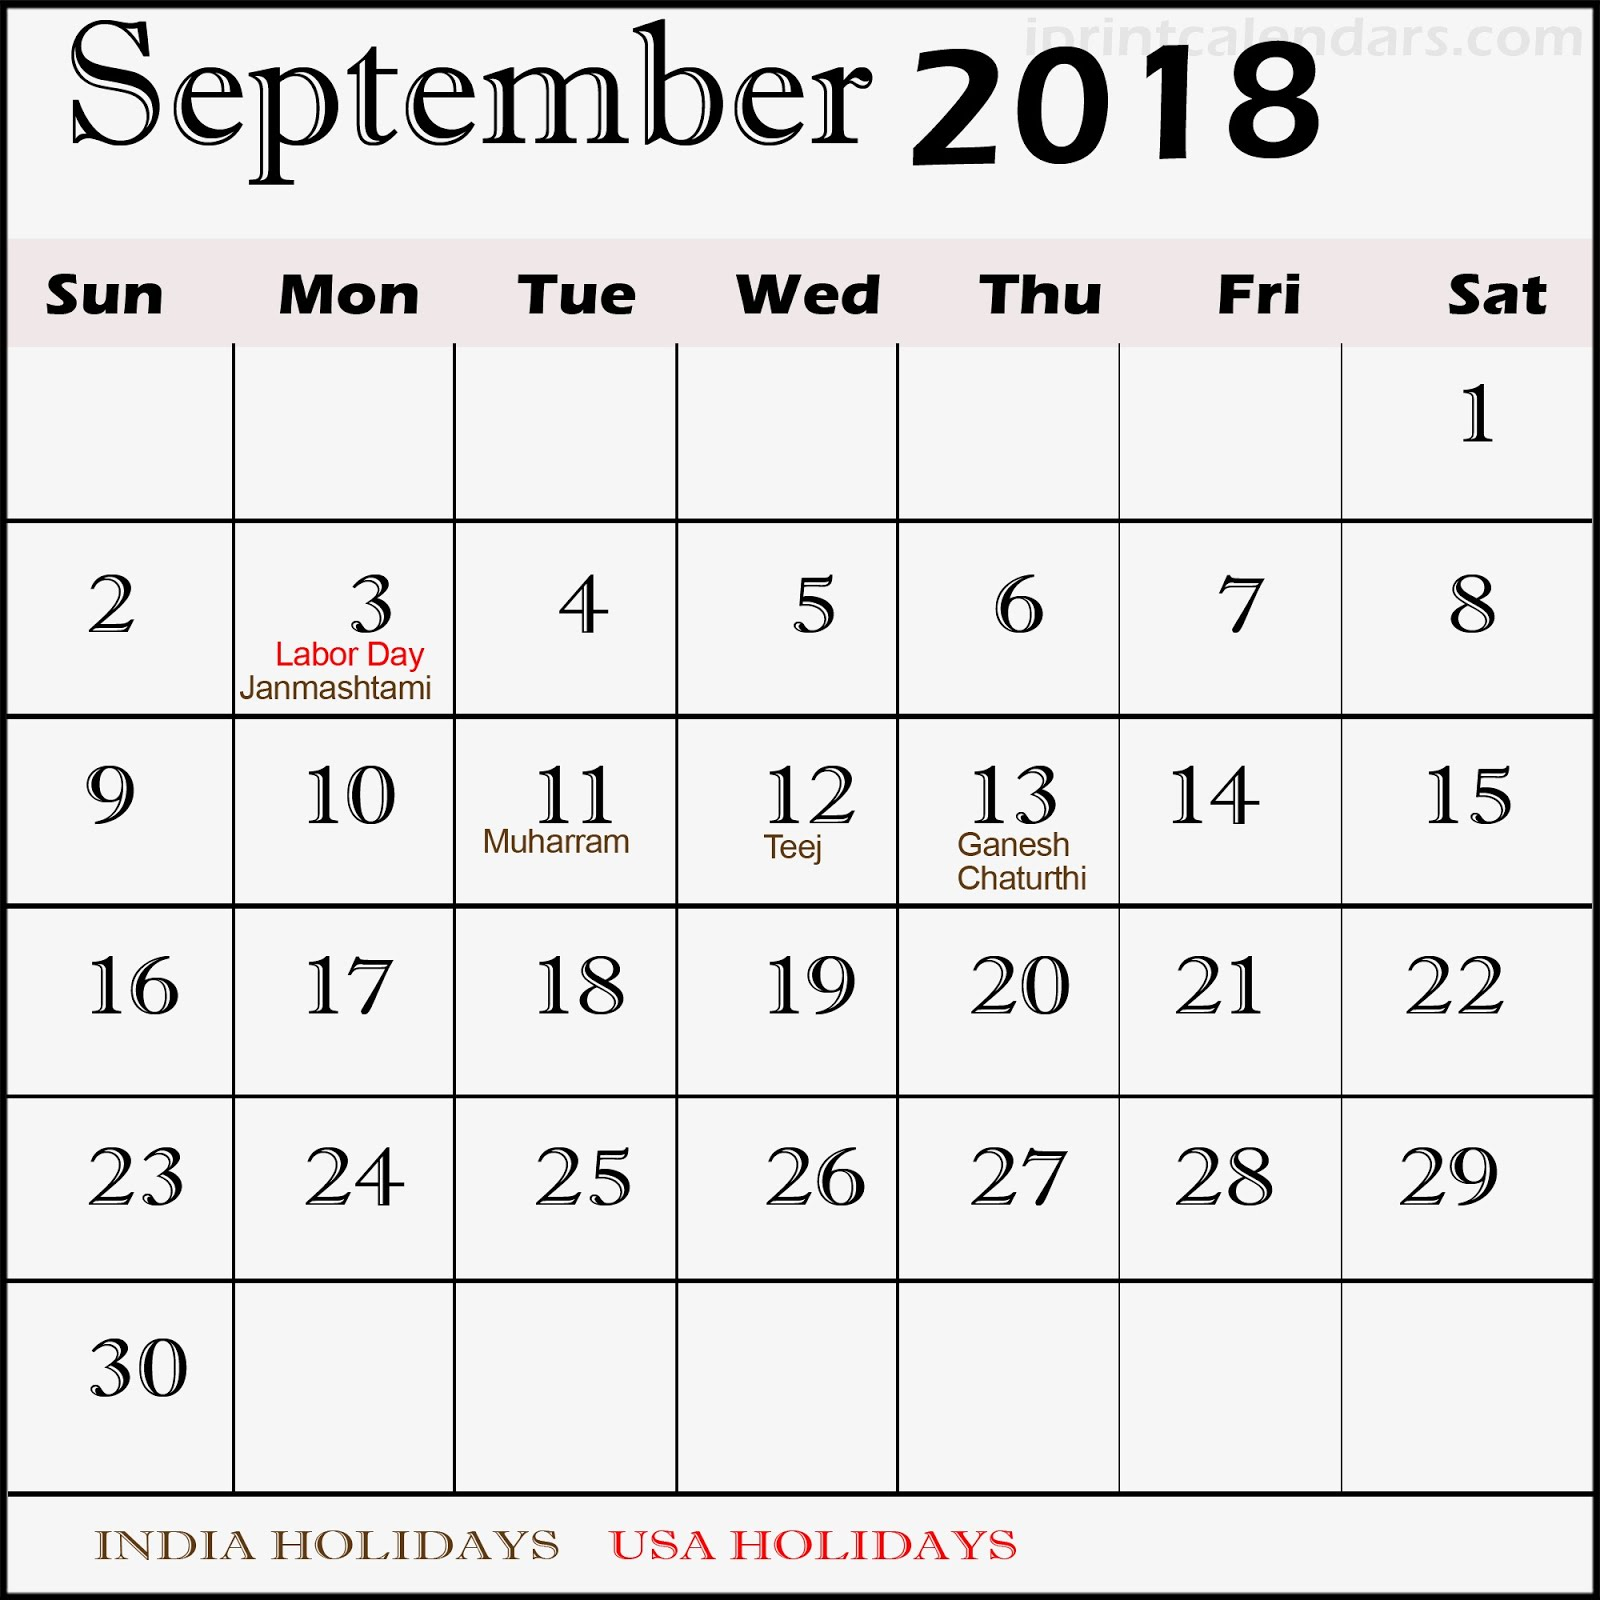 September 2018 Holiday Calendar